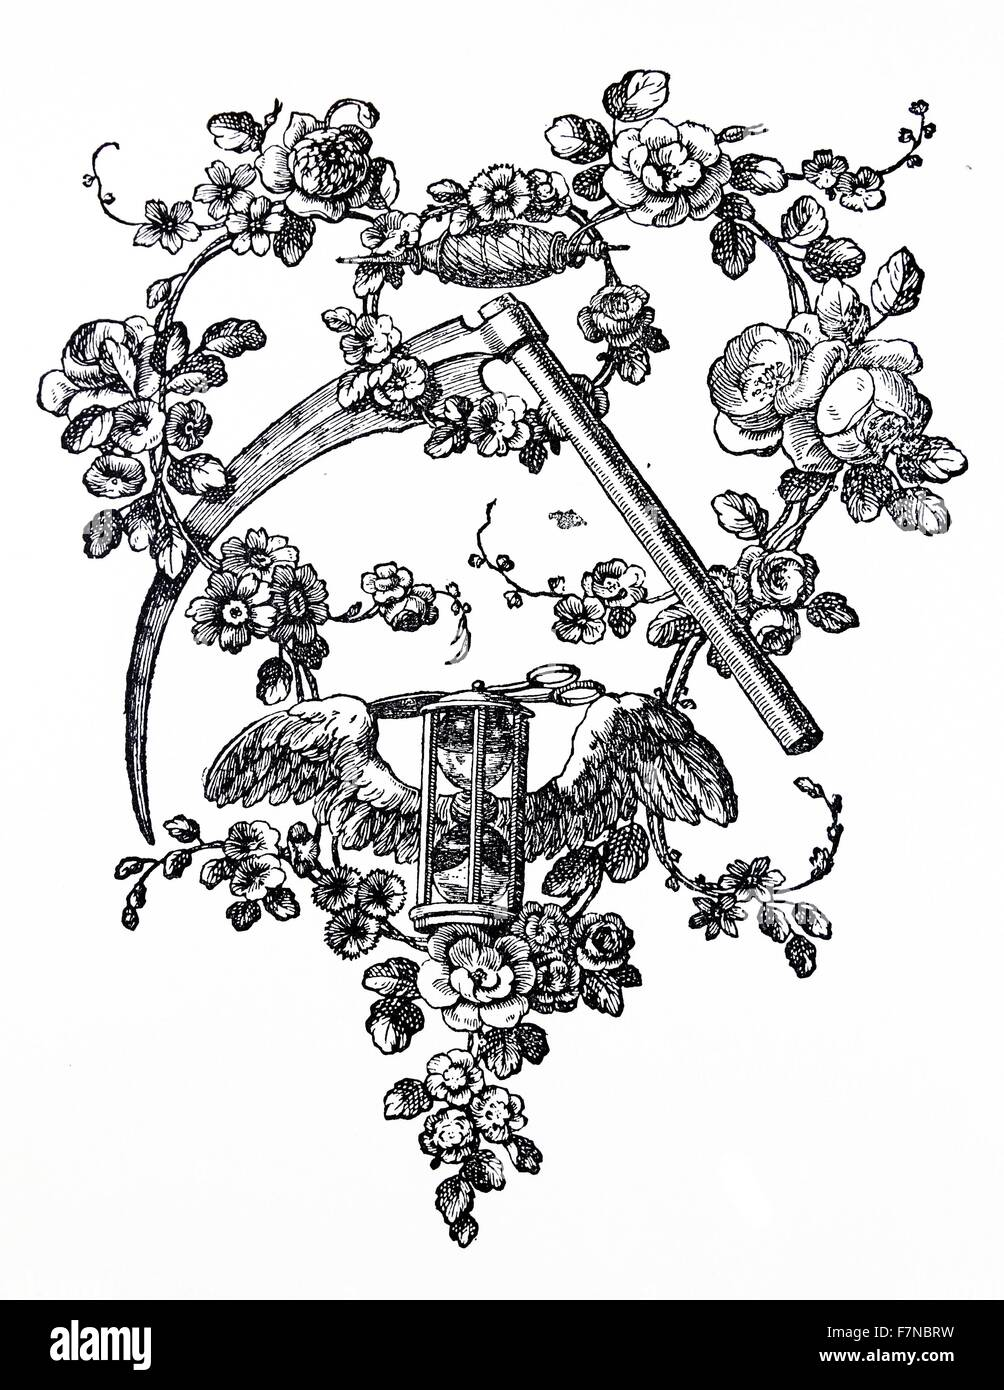 English woodcut from 1810. A woodcut is a relief printing process in which a relief-like wooden printing block is - Stock Image